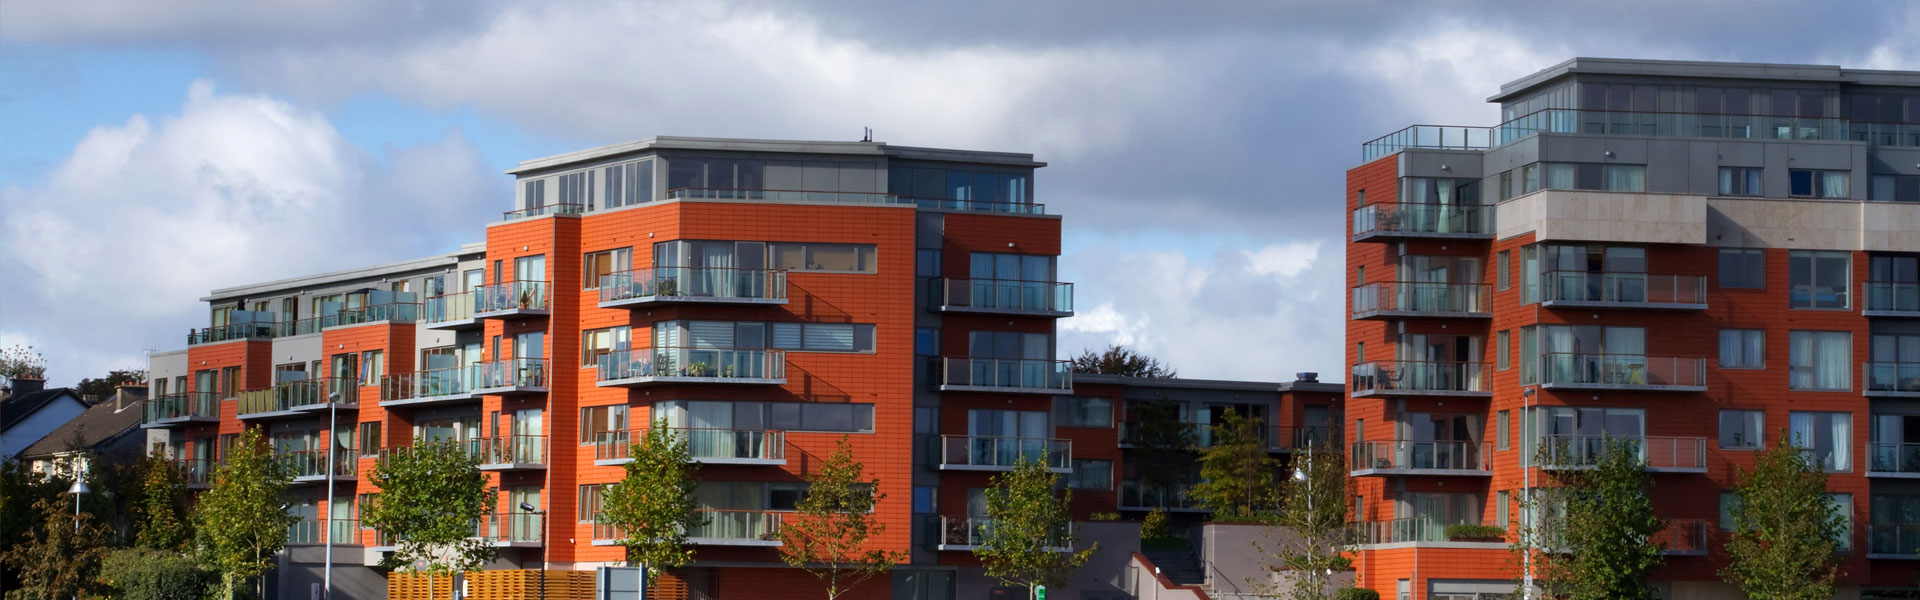 professional Commercial property management in Lisronagh